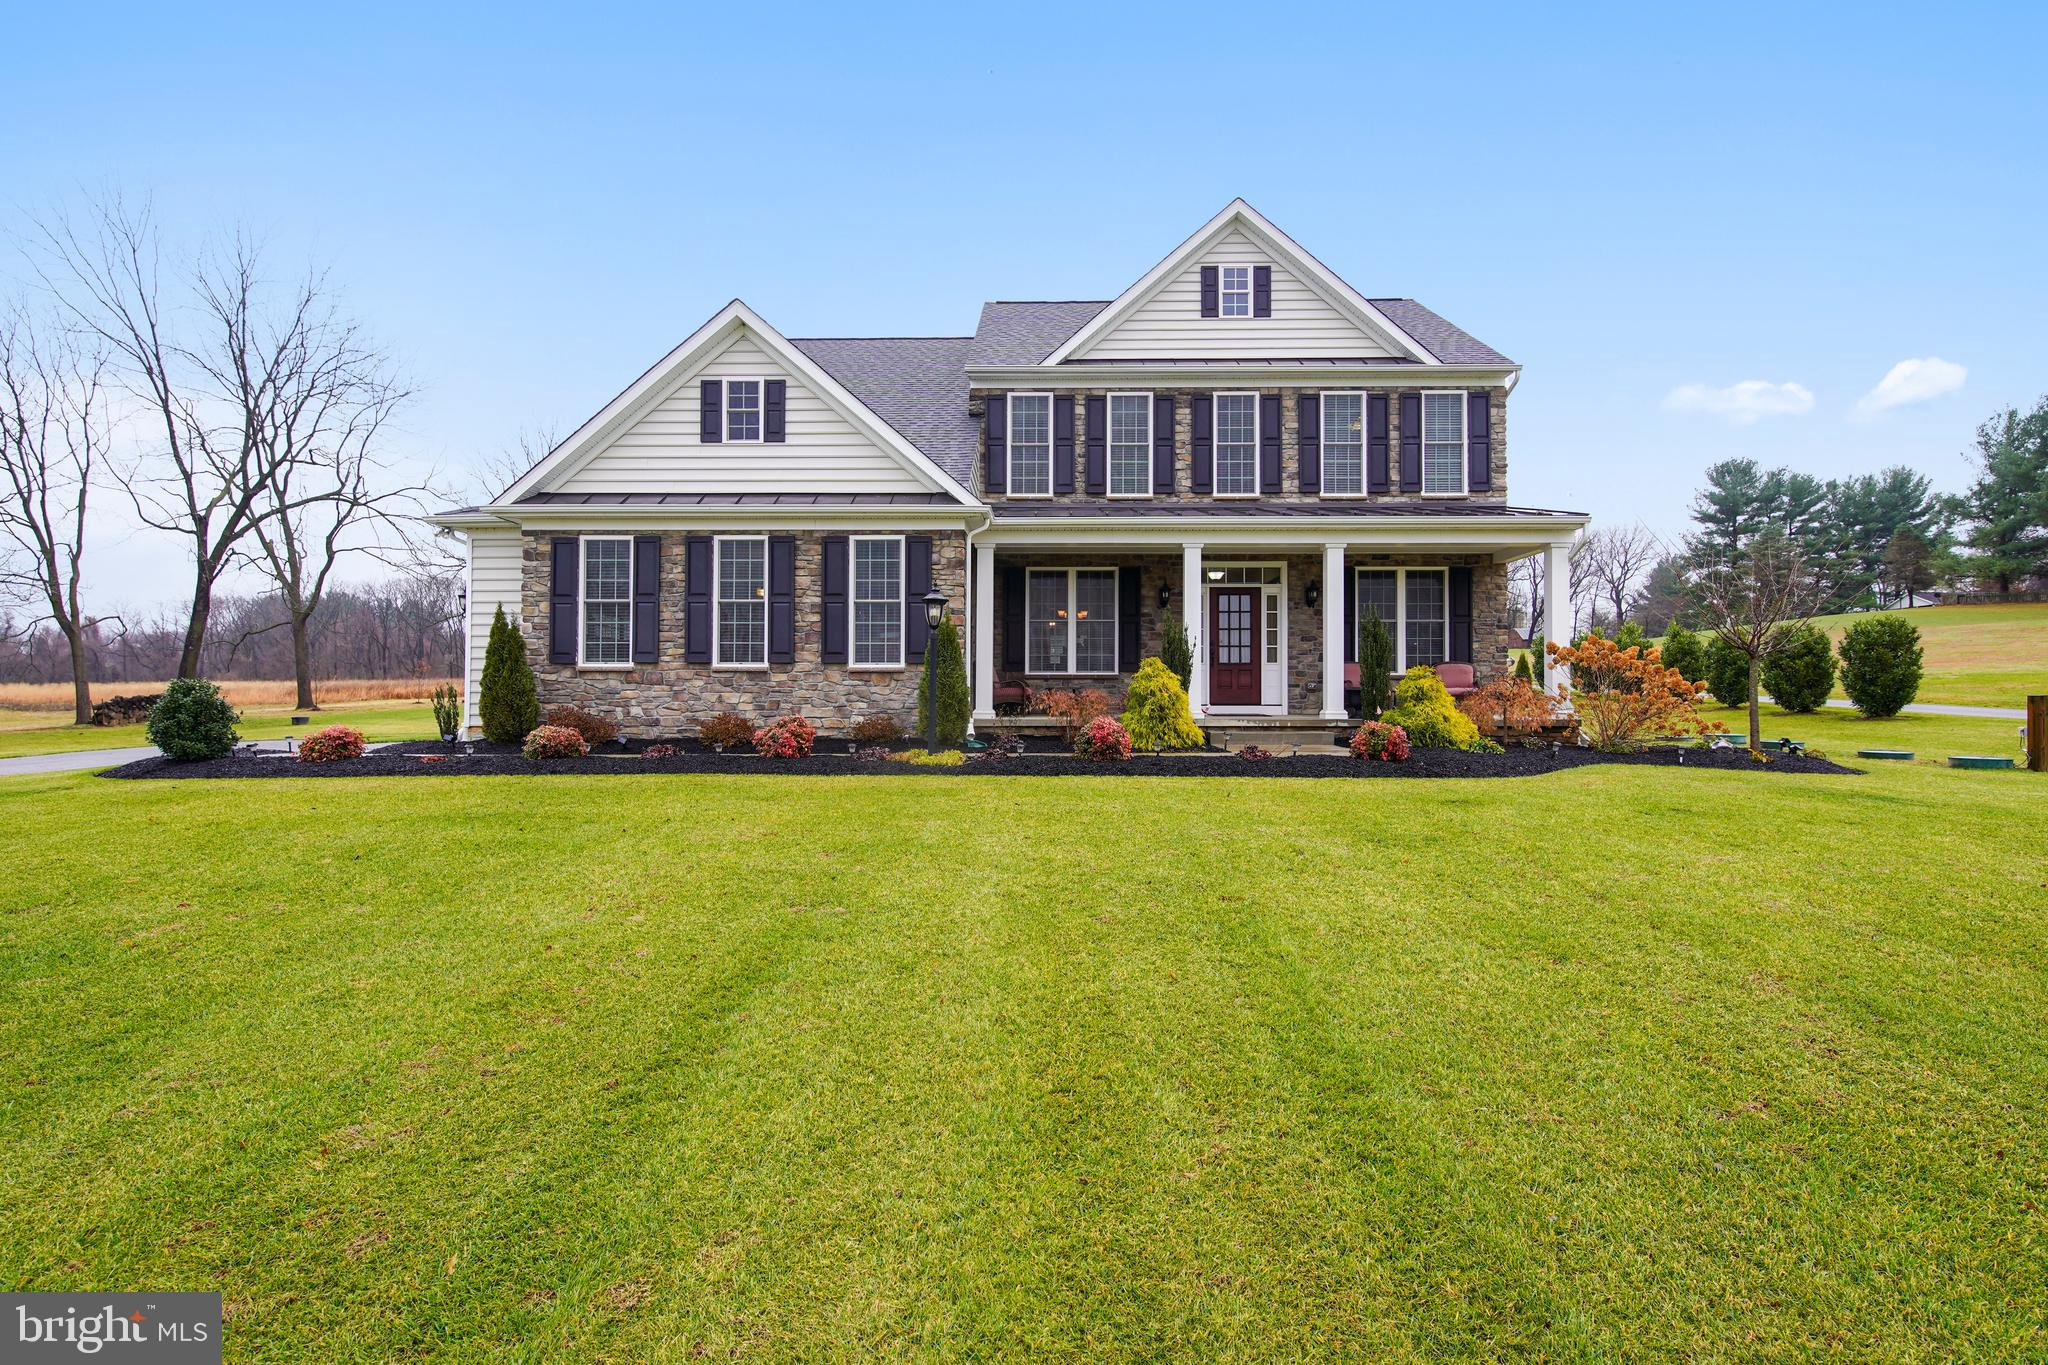 571 SULLIVAN ROAD, WESTMINSTER, MD 21157